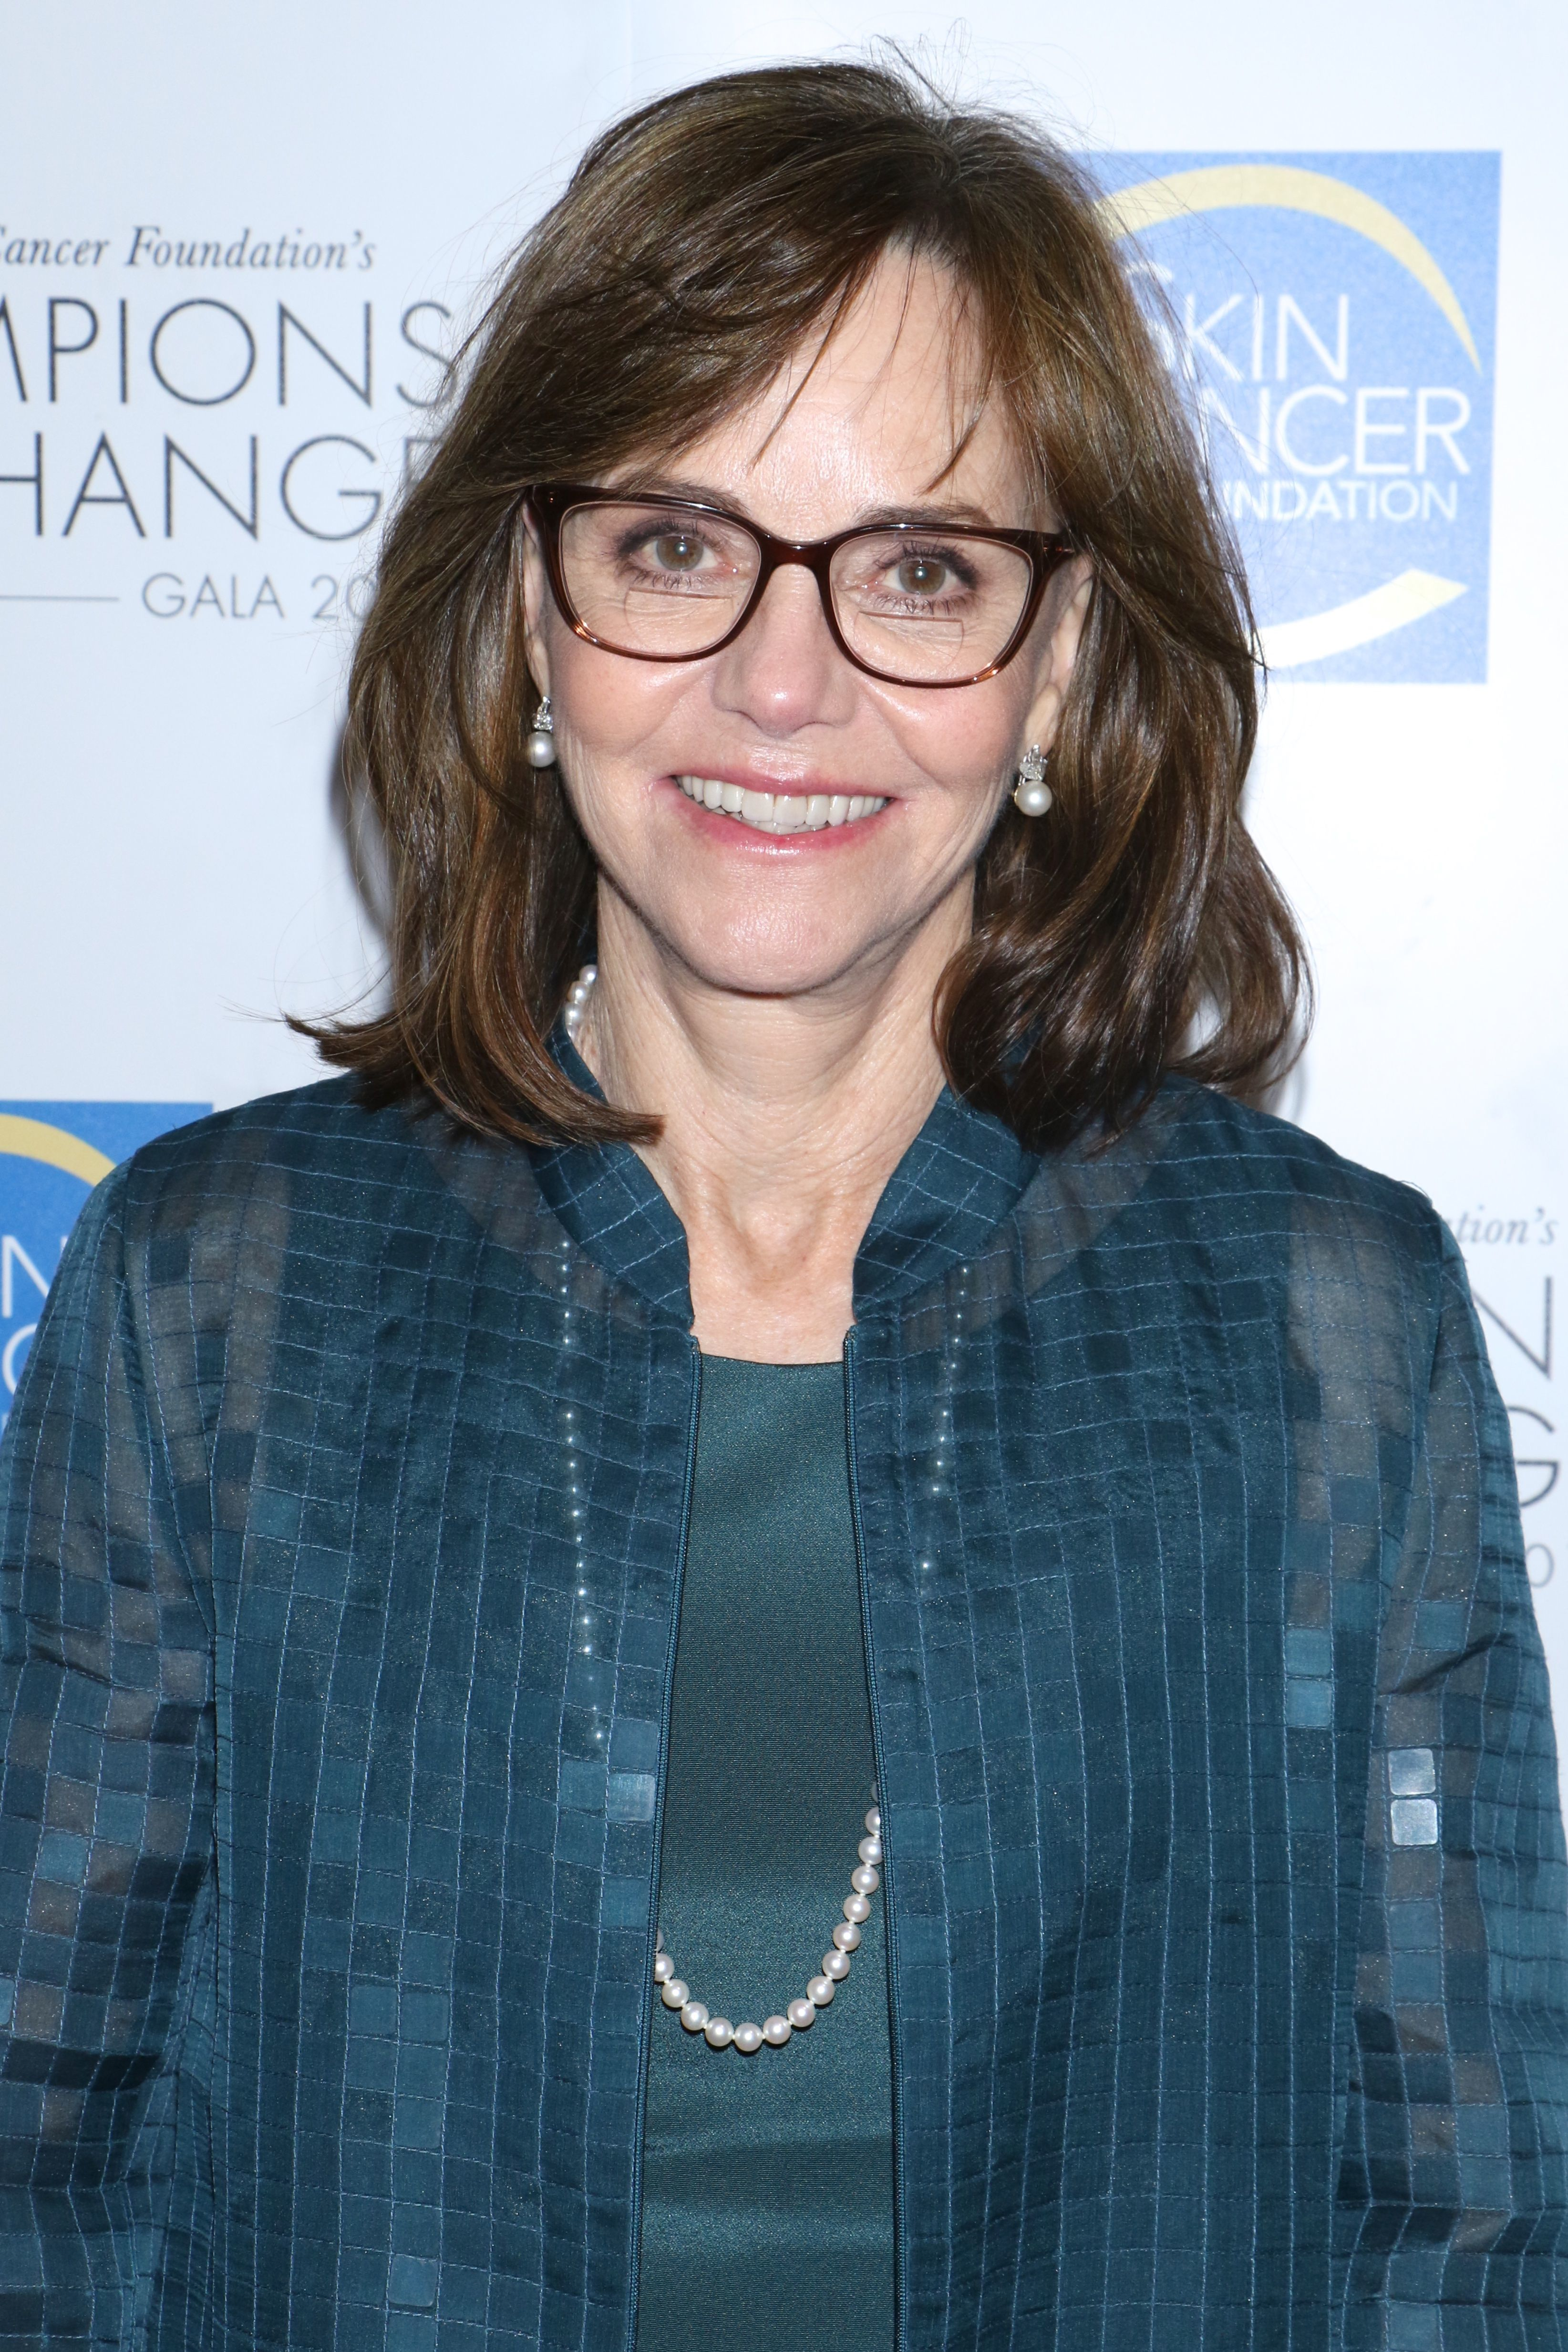 """Sally Field attends The Skin Cancer Foundation's """"Champions for Change"""" gala in New York City on Oct. 17, 2017."""